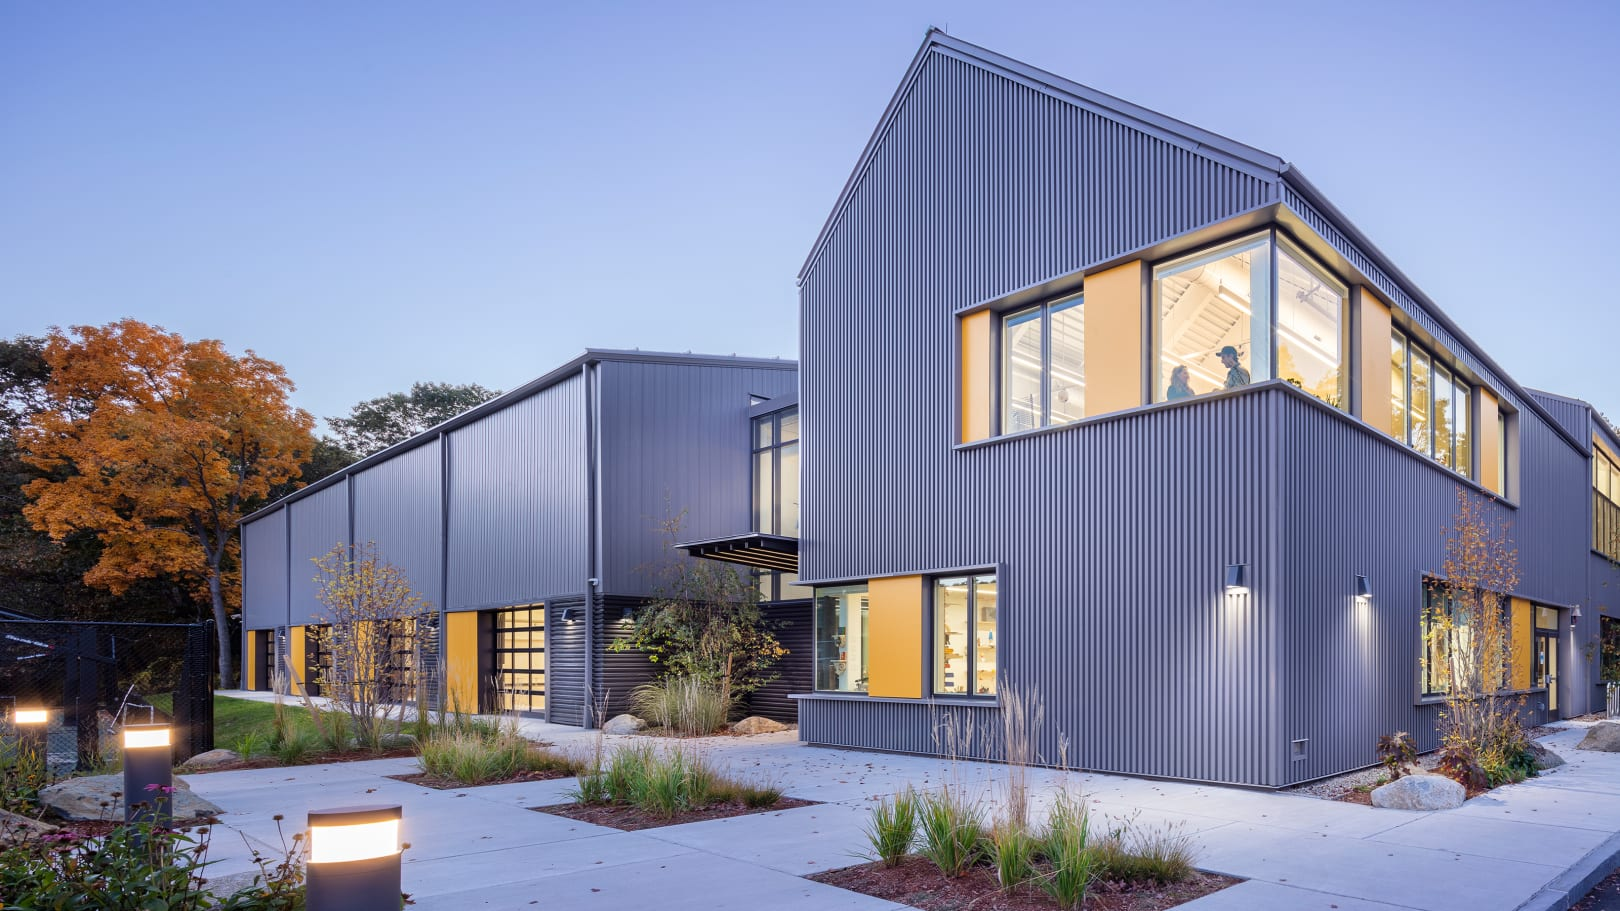 The Barn comprises two buildings: a pre-engineered metal fieldhouse and a stick-built headhouse with 5 STEAM classrooms. The corrugated metal cladding and exposed steel structure provide a design language that bridges the gap.